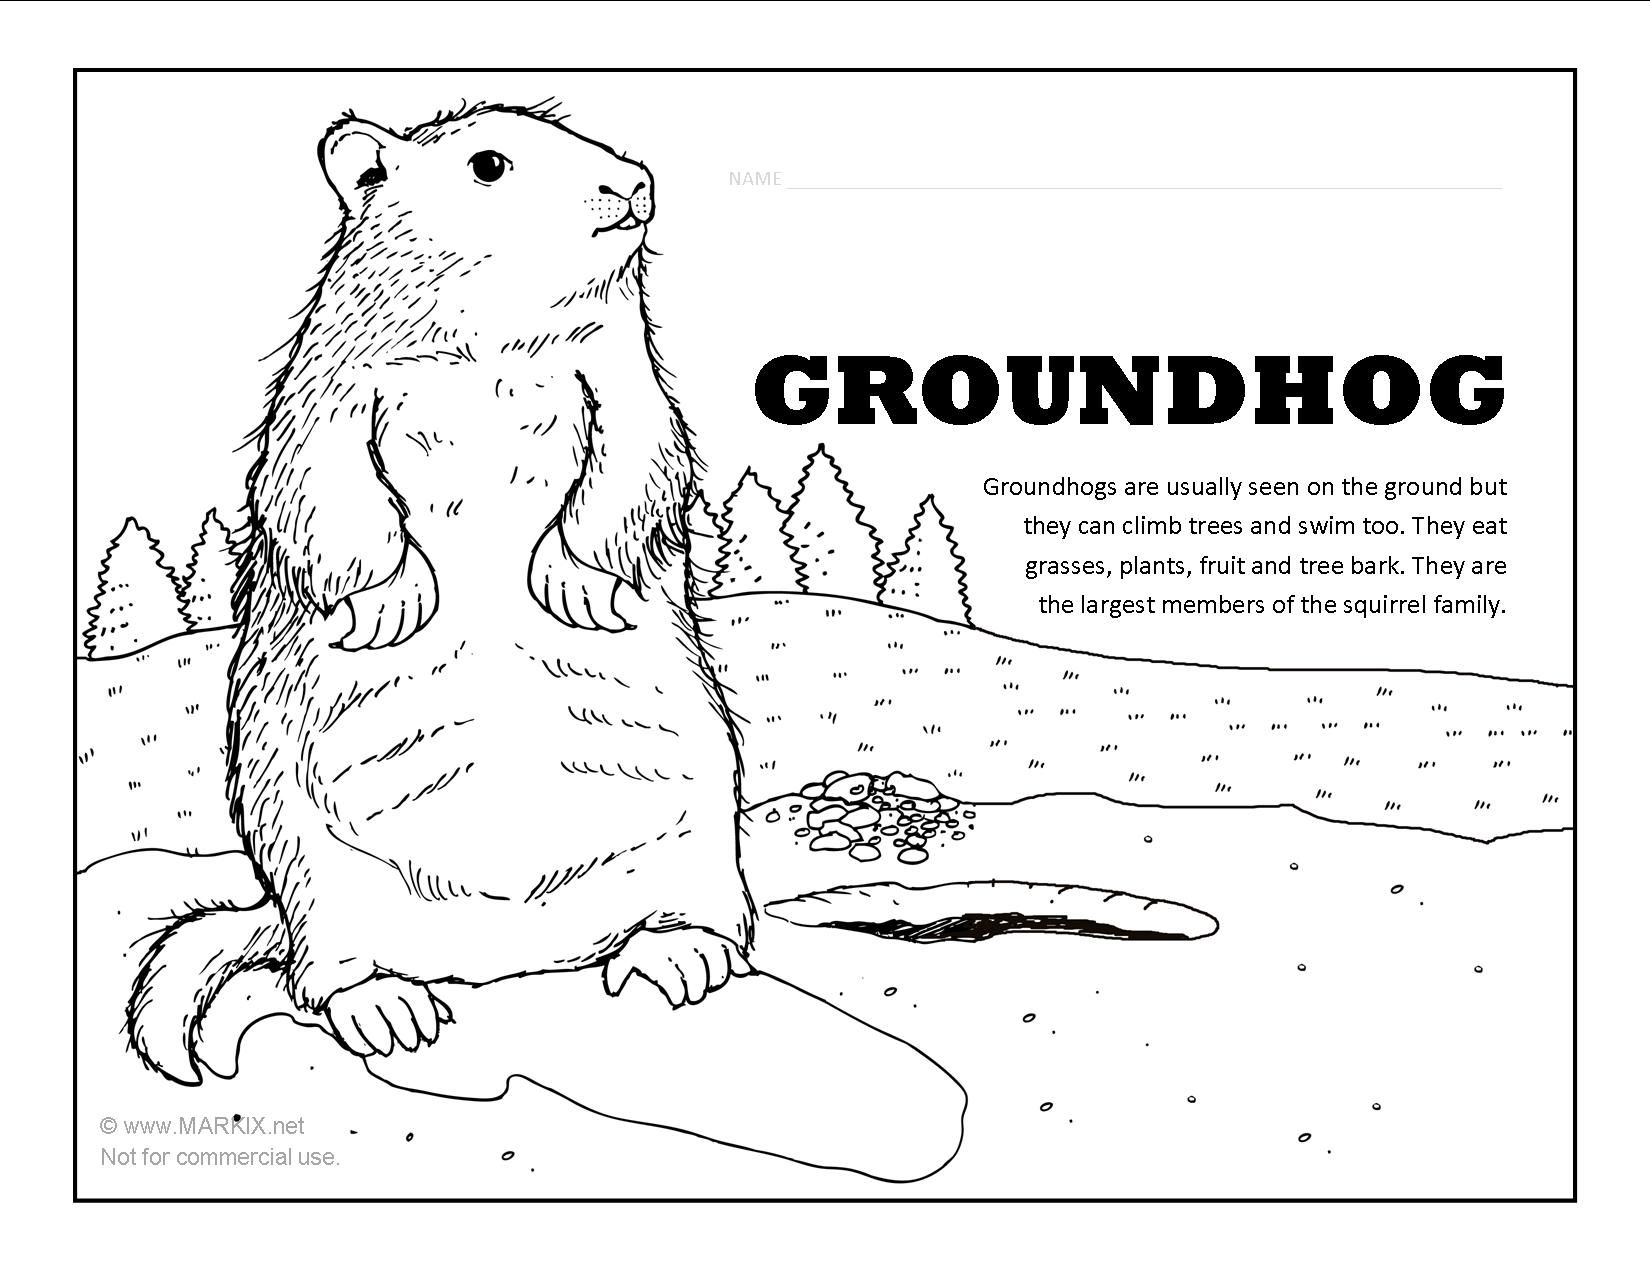 groundhog coloring page happy groundhog day coloring page twisty noodle page coloring groundhog